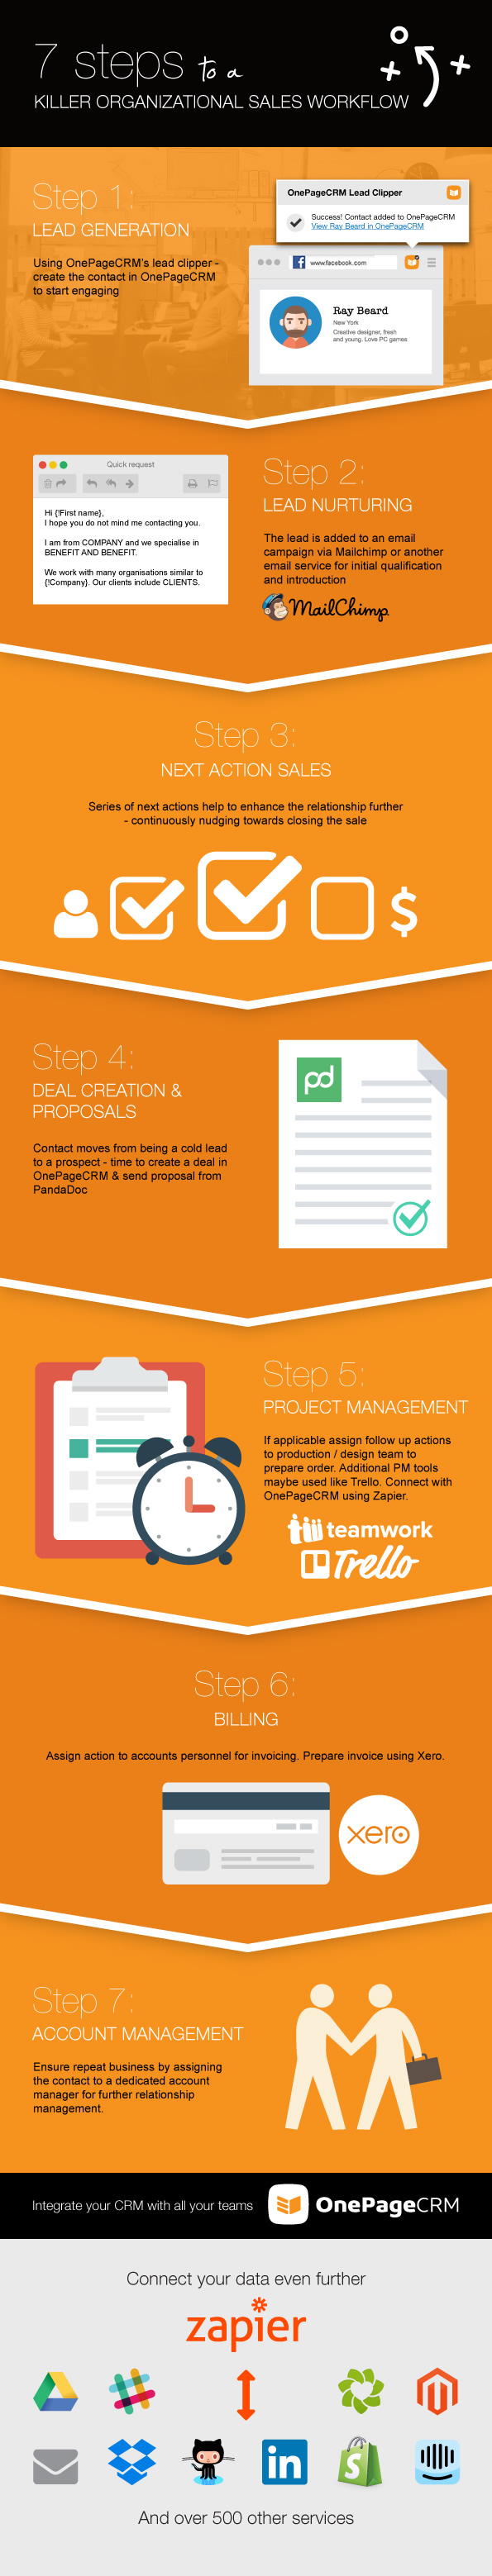 sales-organizational-workflow-infographic-v4